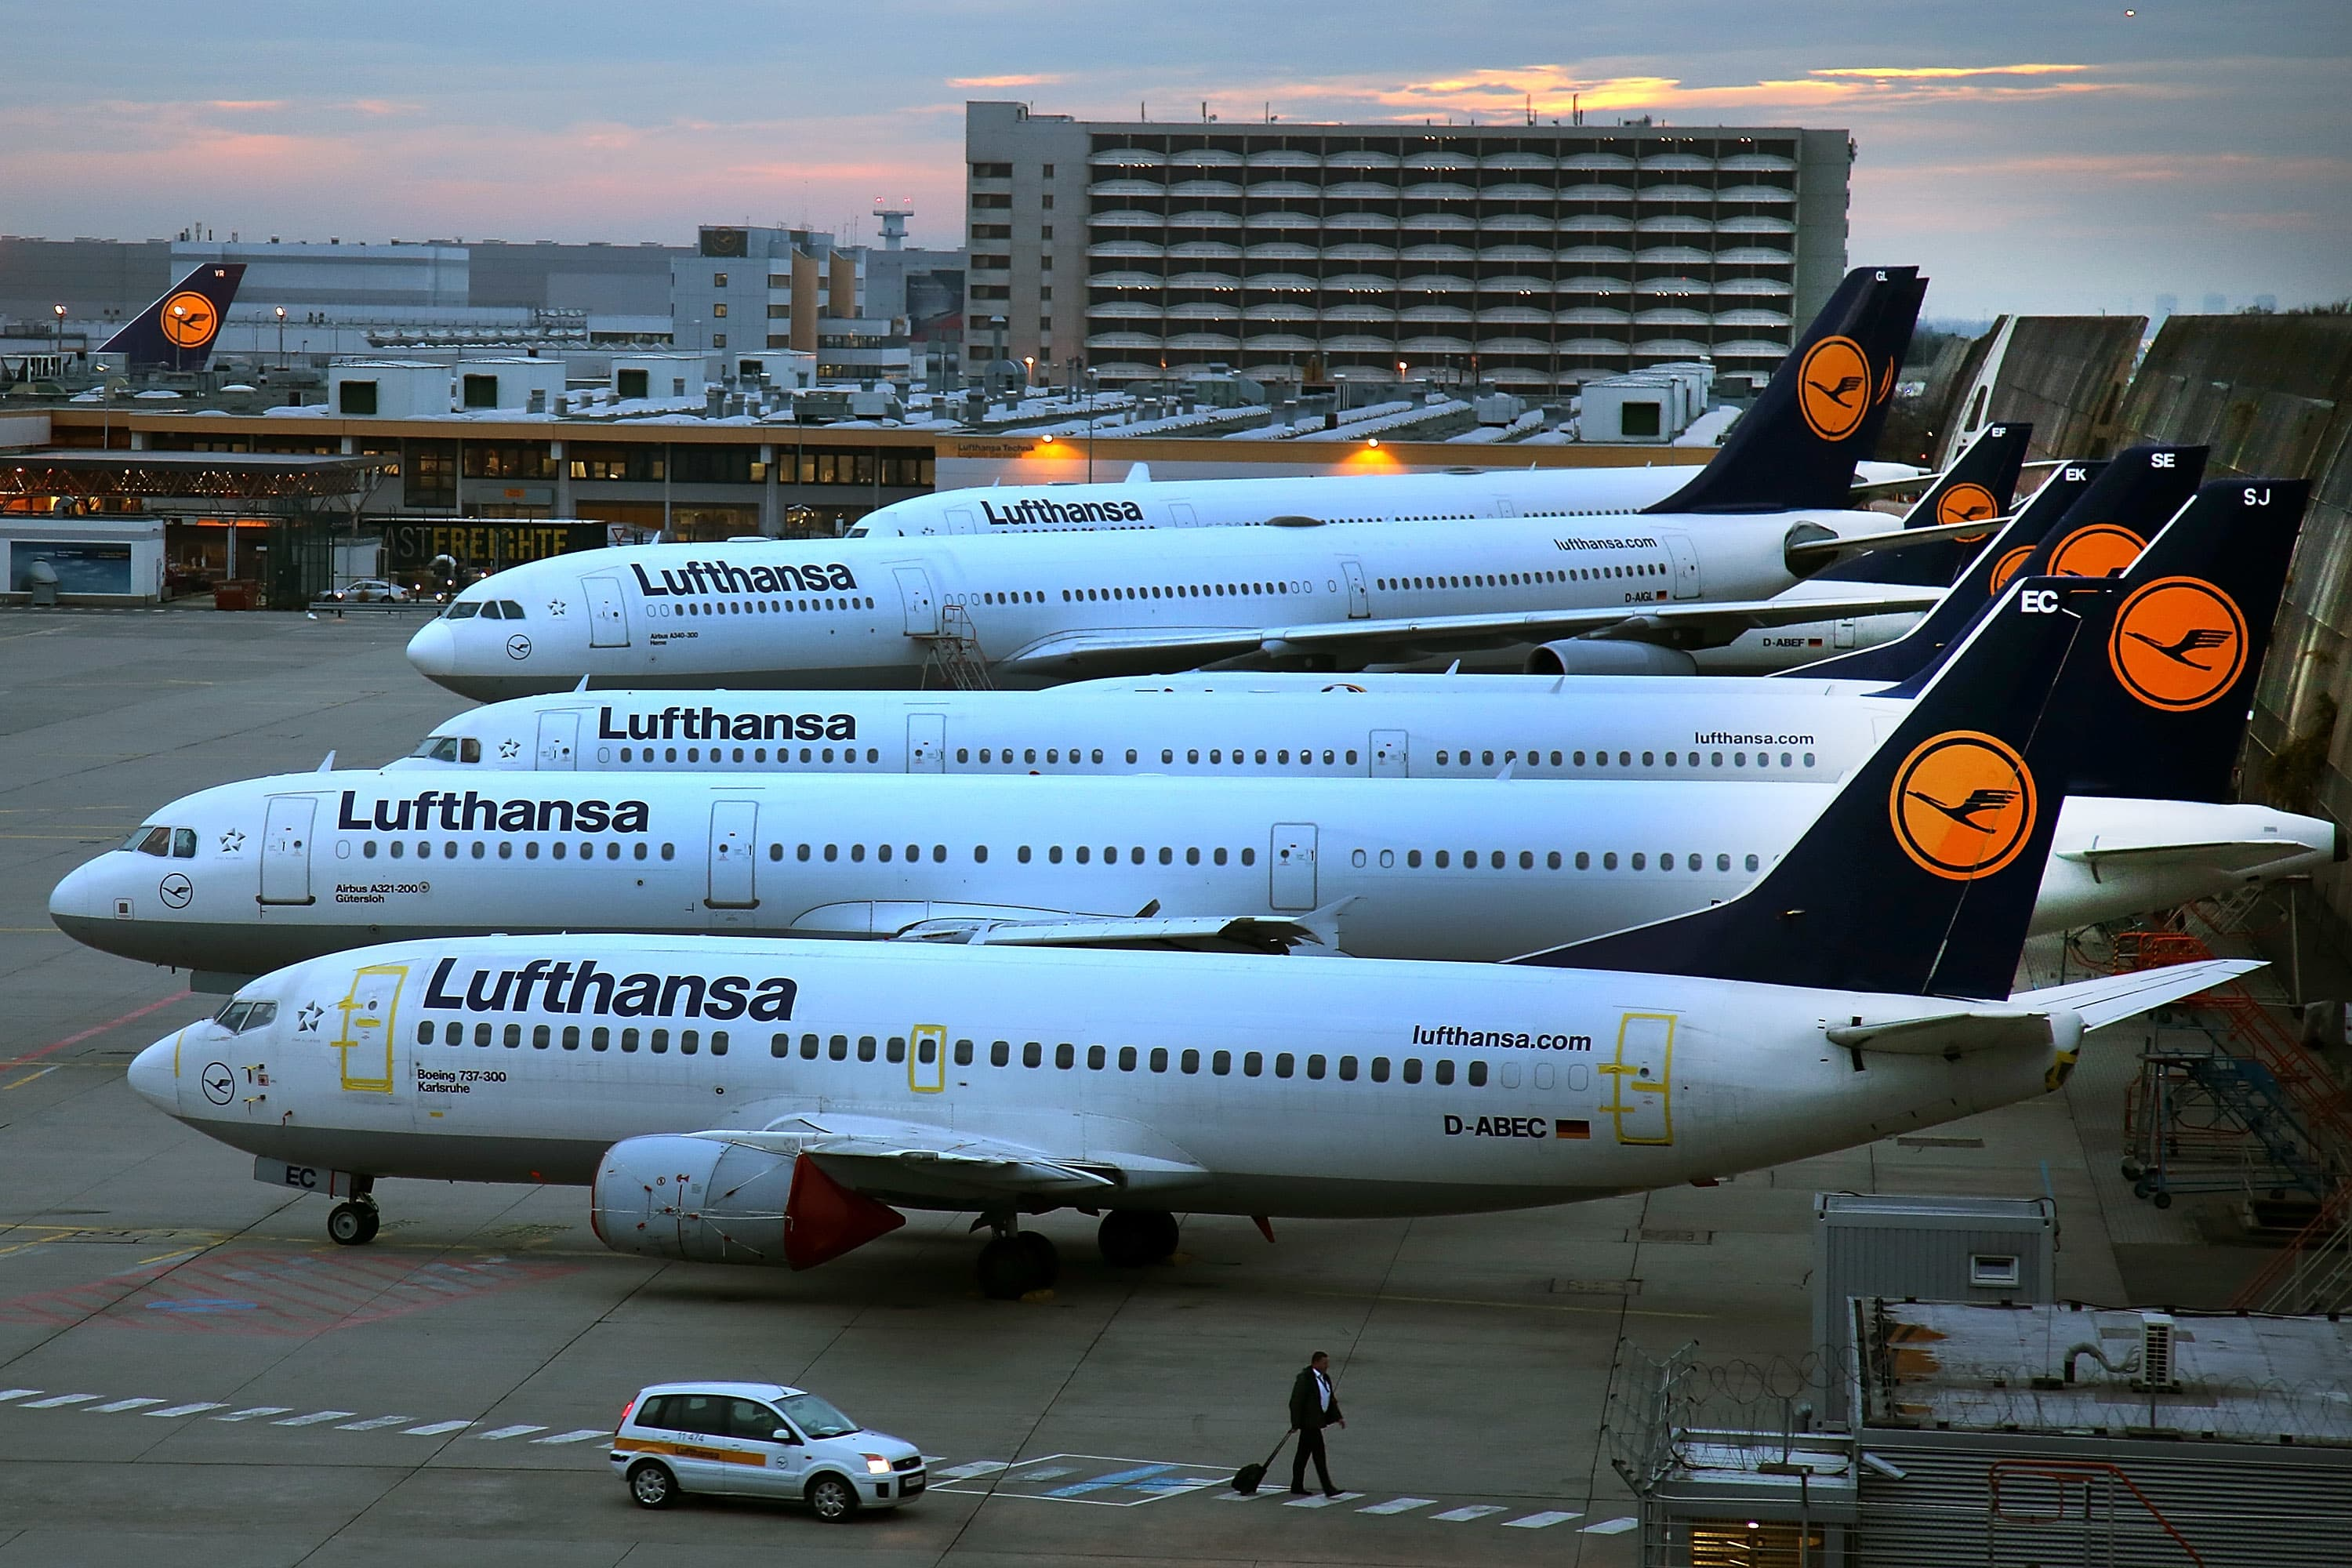 Europe's airline sector is prime for consolidation: Lufthansa CEO